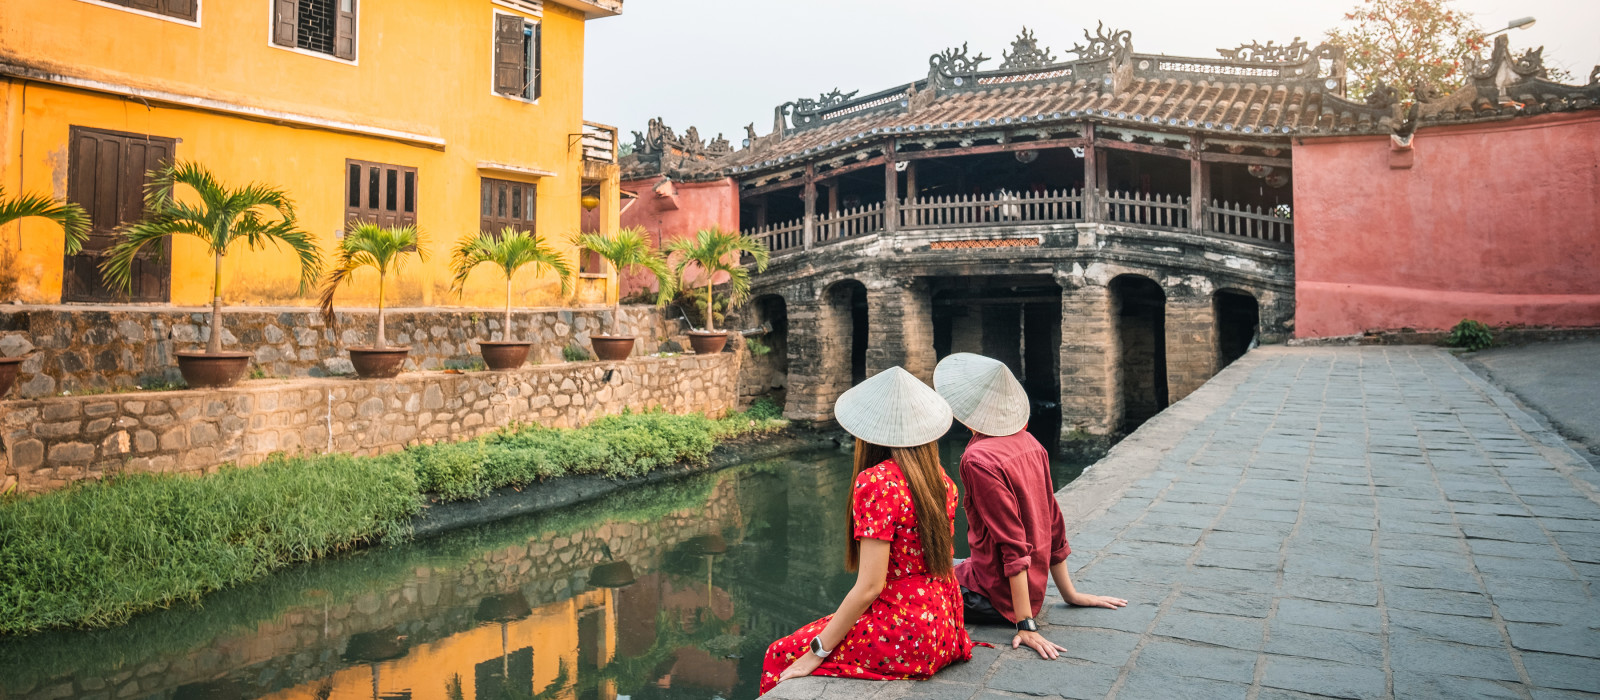 Travel couple with Japanese Covered Bridge, in Hoi An, Vietnam, Asia